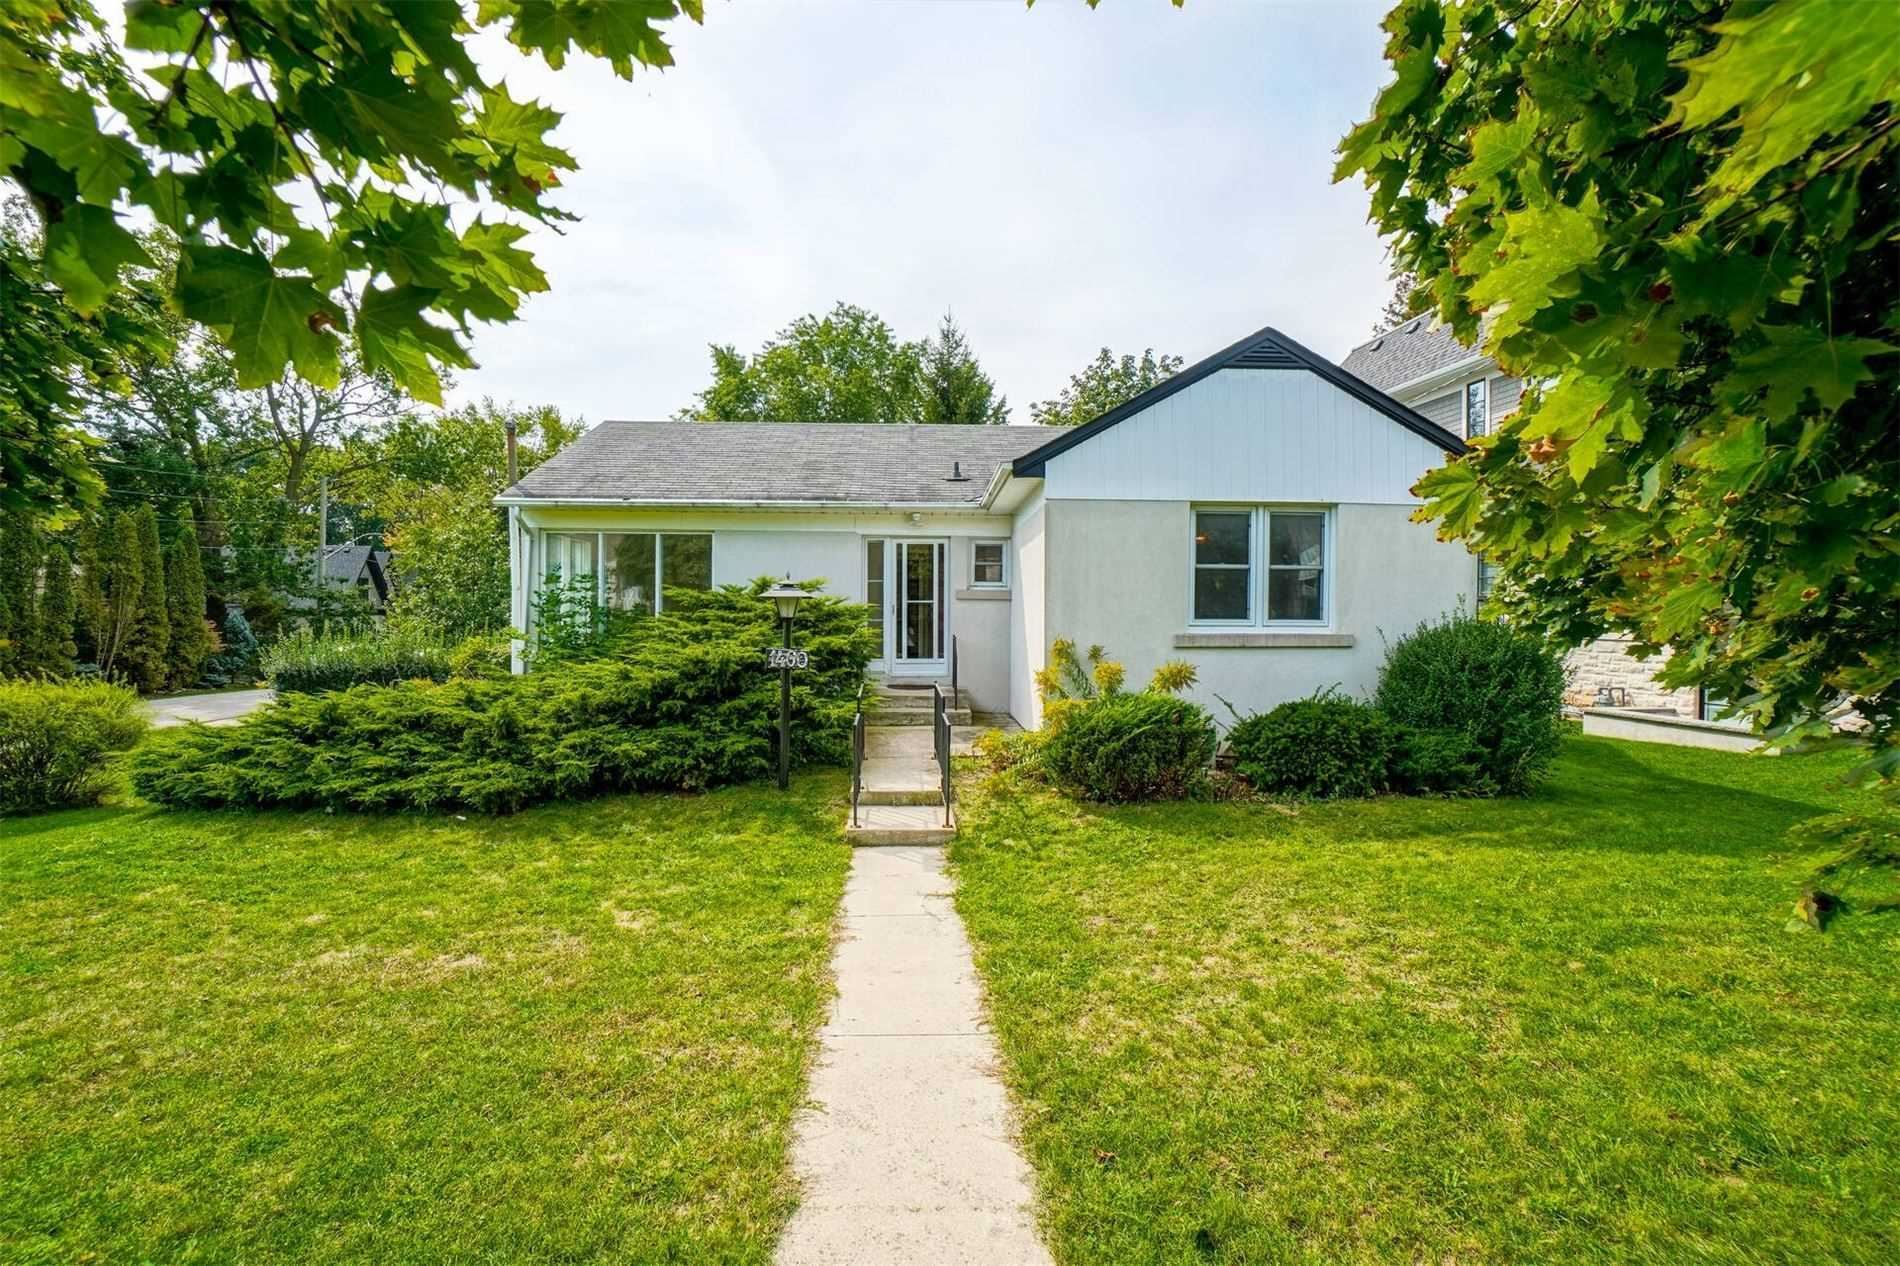 1460 Kenmuir Ave, Mississauga, ON L5G4B5 - MLS#: W5387100